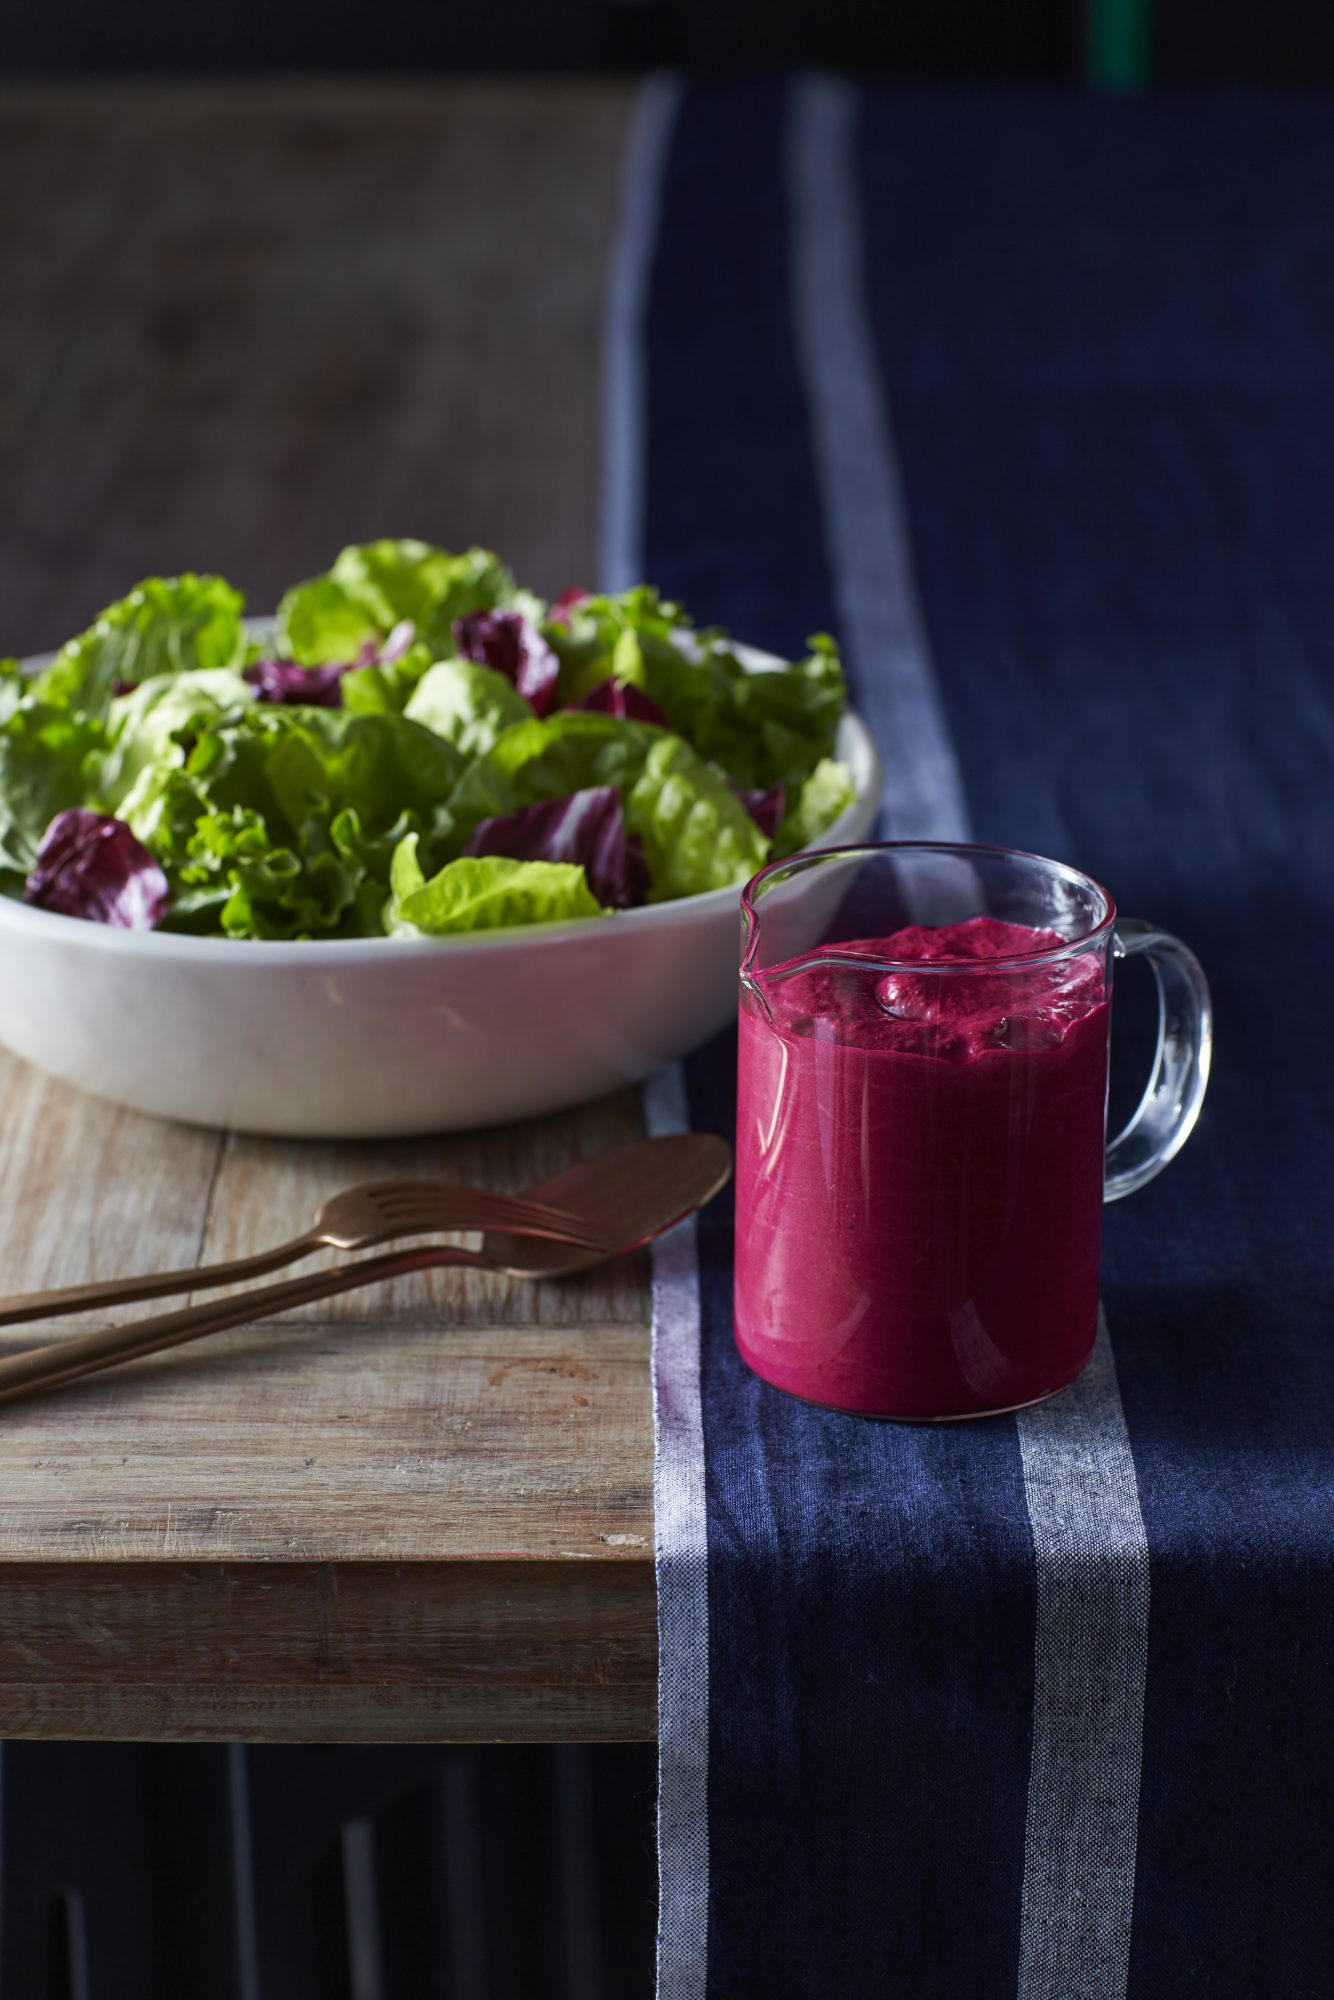 mr-green-salad-beet-dressing-image